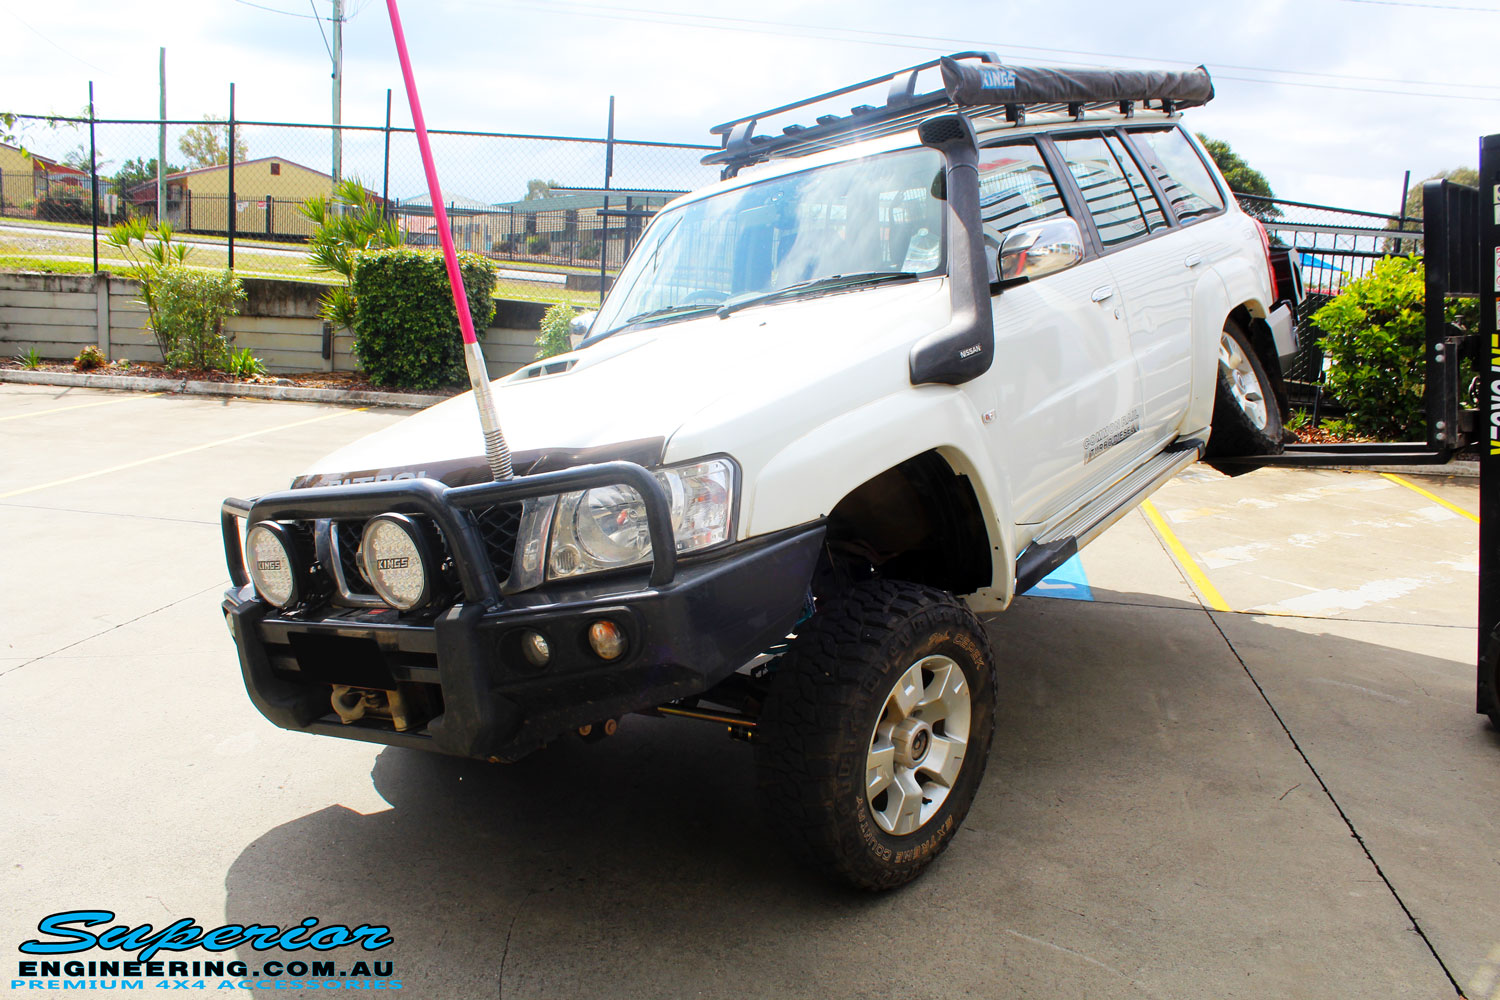 """Front left side view of a flexed White Nissan GU Patrol Wagon after fitment of a Superior Nitro Gas 2"""" Inch Lift Kit, Coil Tower Brace Kit, Superior Hybrid Superflex Radius Arms, Airbag Man Coil Air Kit and Superior Adjustable Hollow Bar Drag Link"""